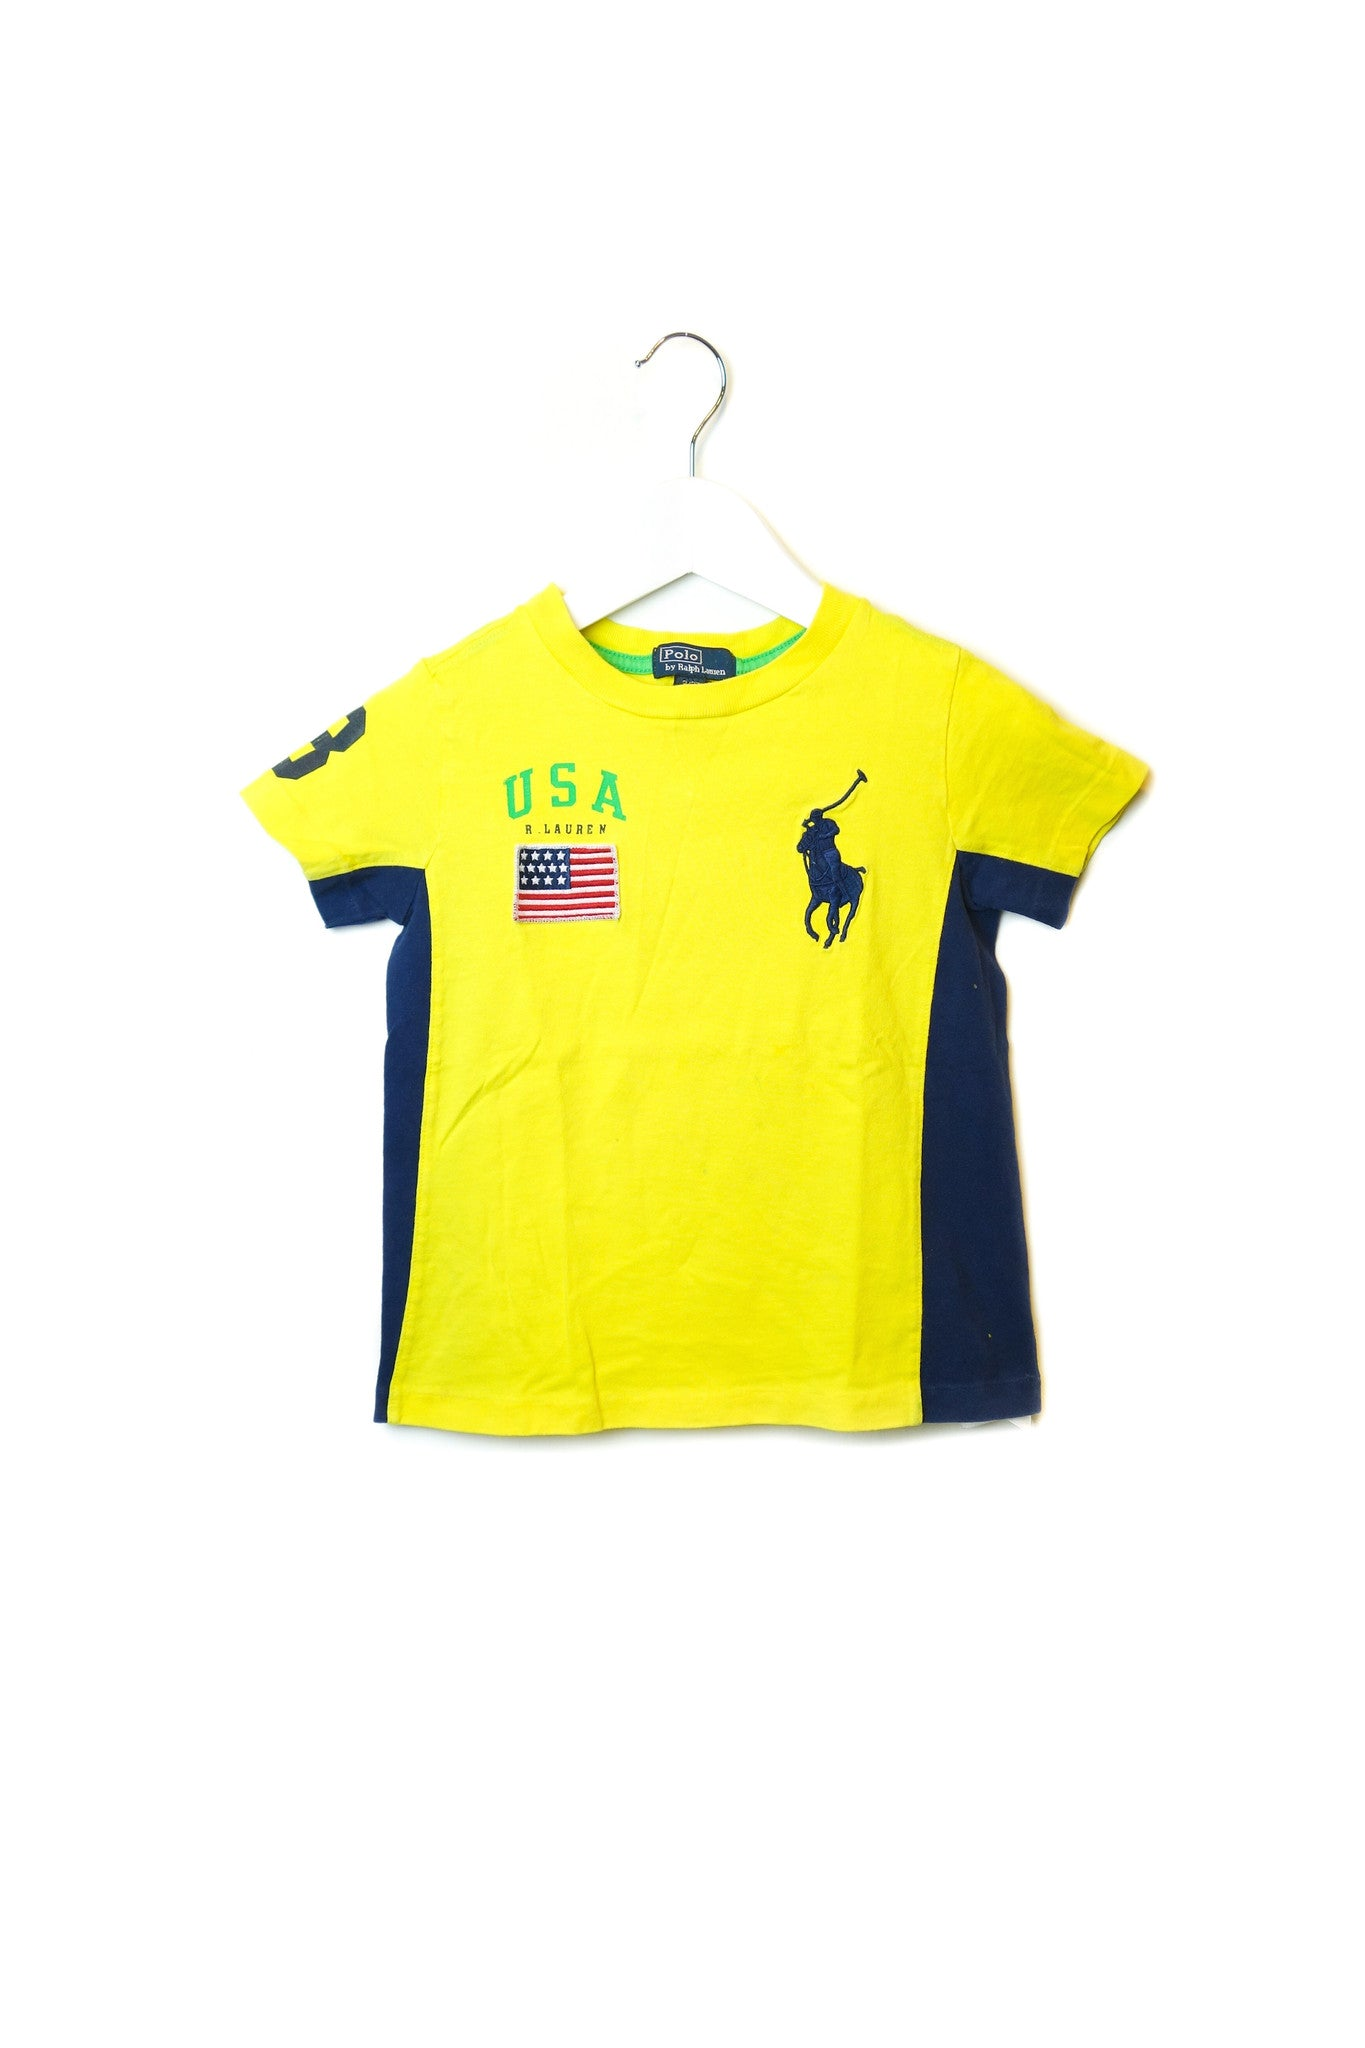 10001771 Polo Ralph Lauren Kids~T-Shirt 3T at Retykle